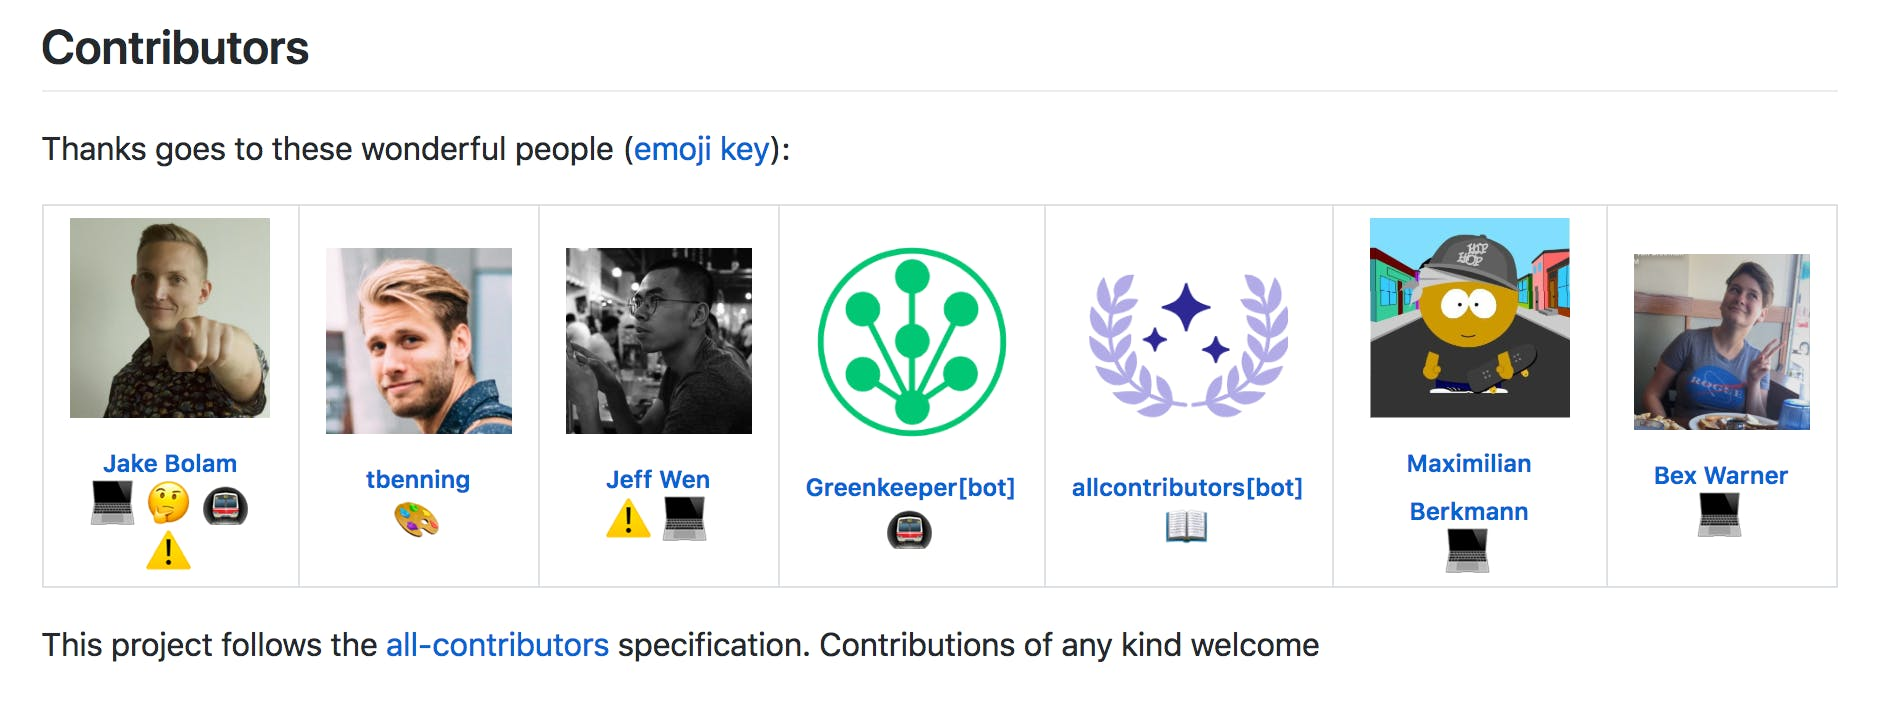 contributors-table-small.png